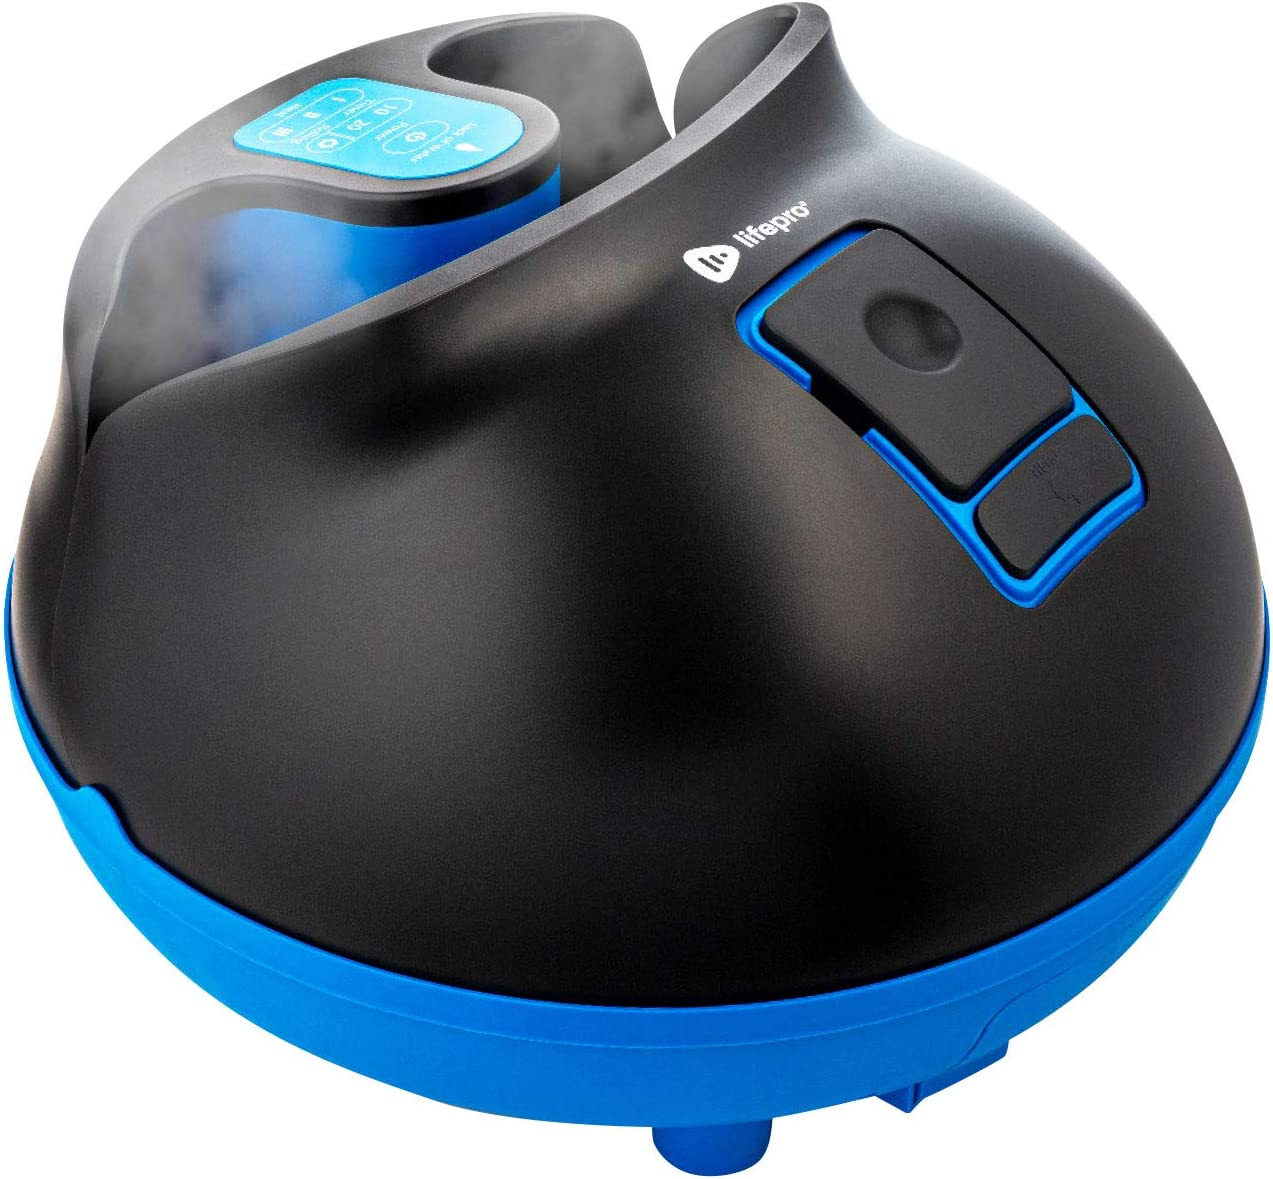 Ranking TOP1 Lifepro Foot ! Super beauty product restock quality top! Spa Massager with Heat Steam Ma Sauna - Acupressure